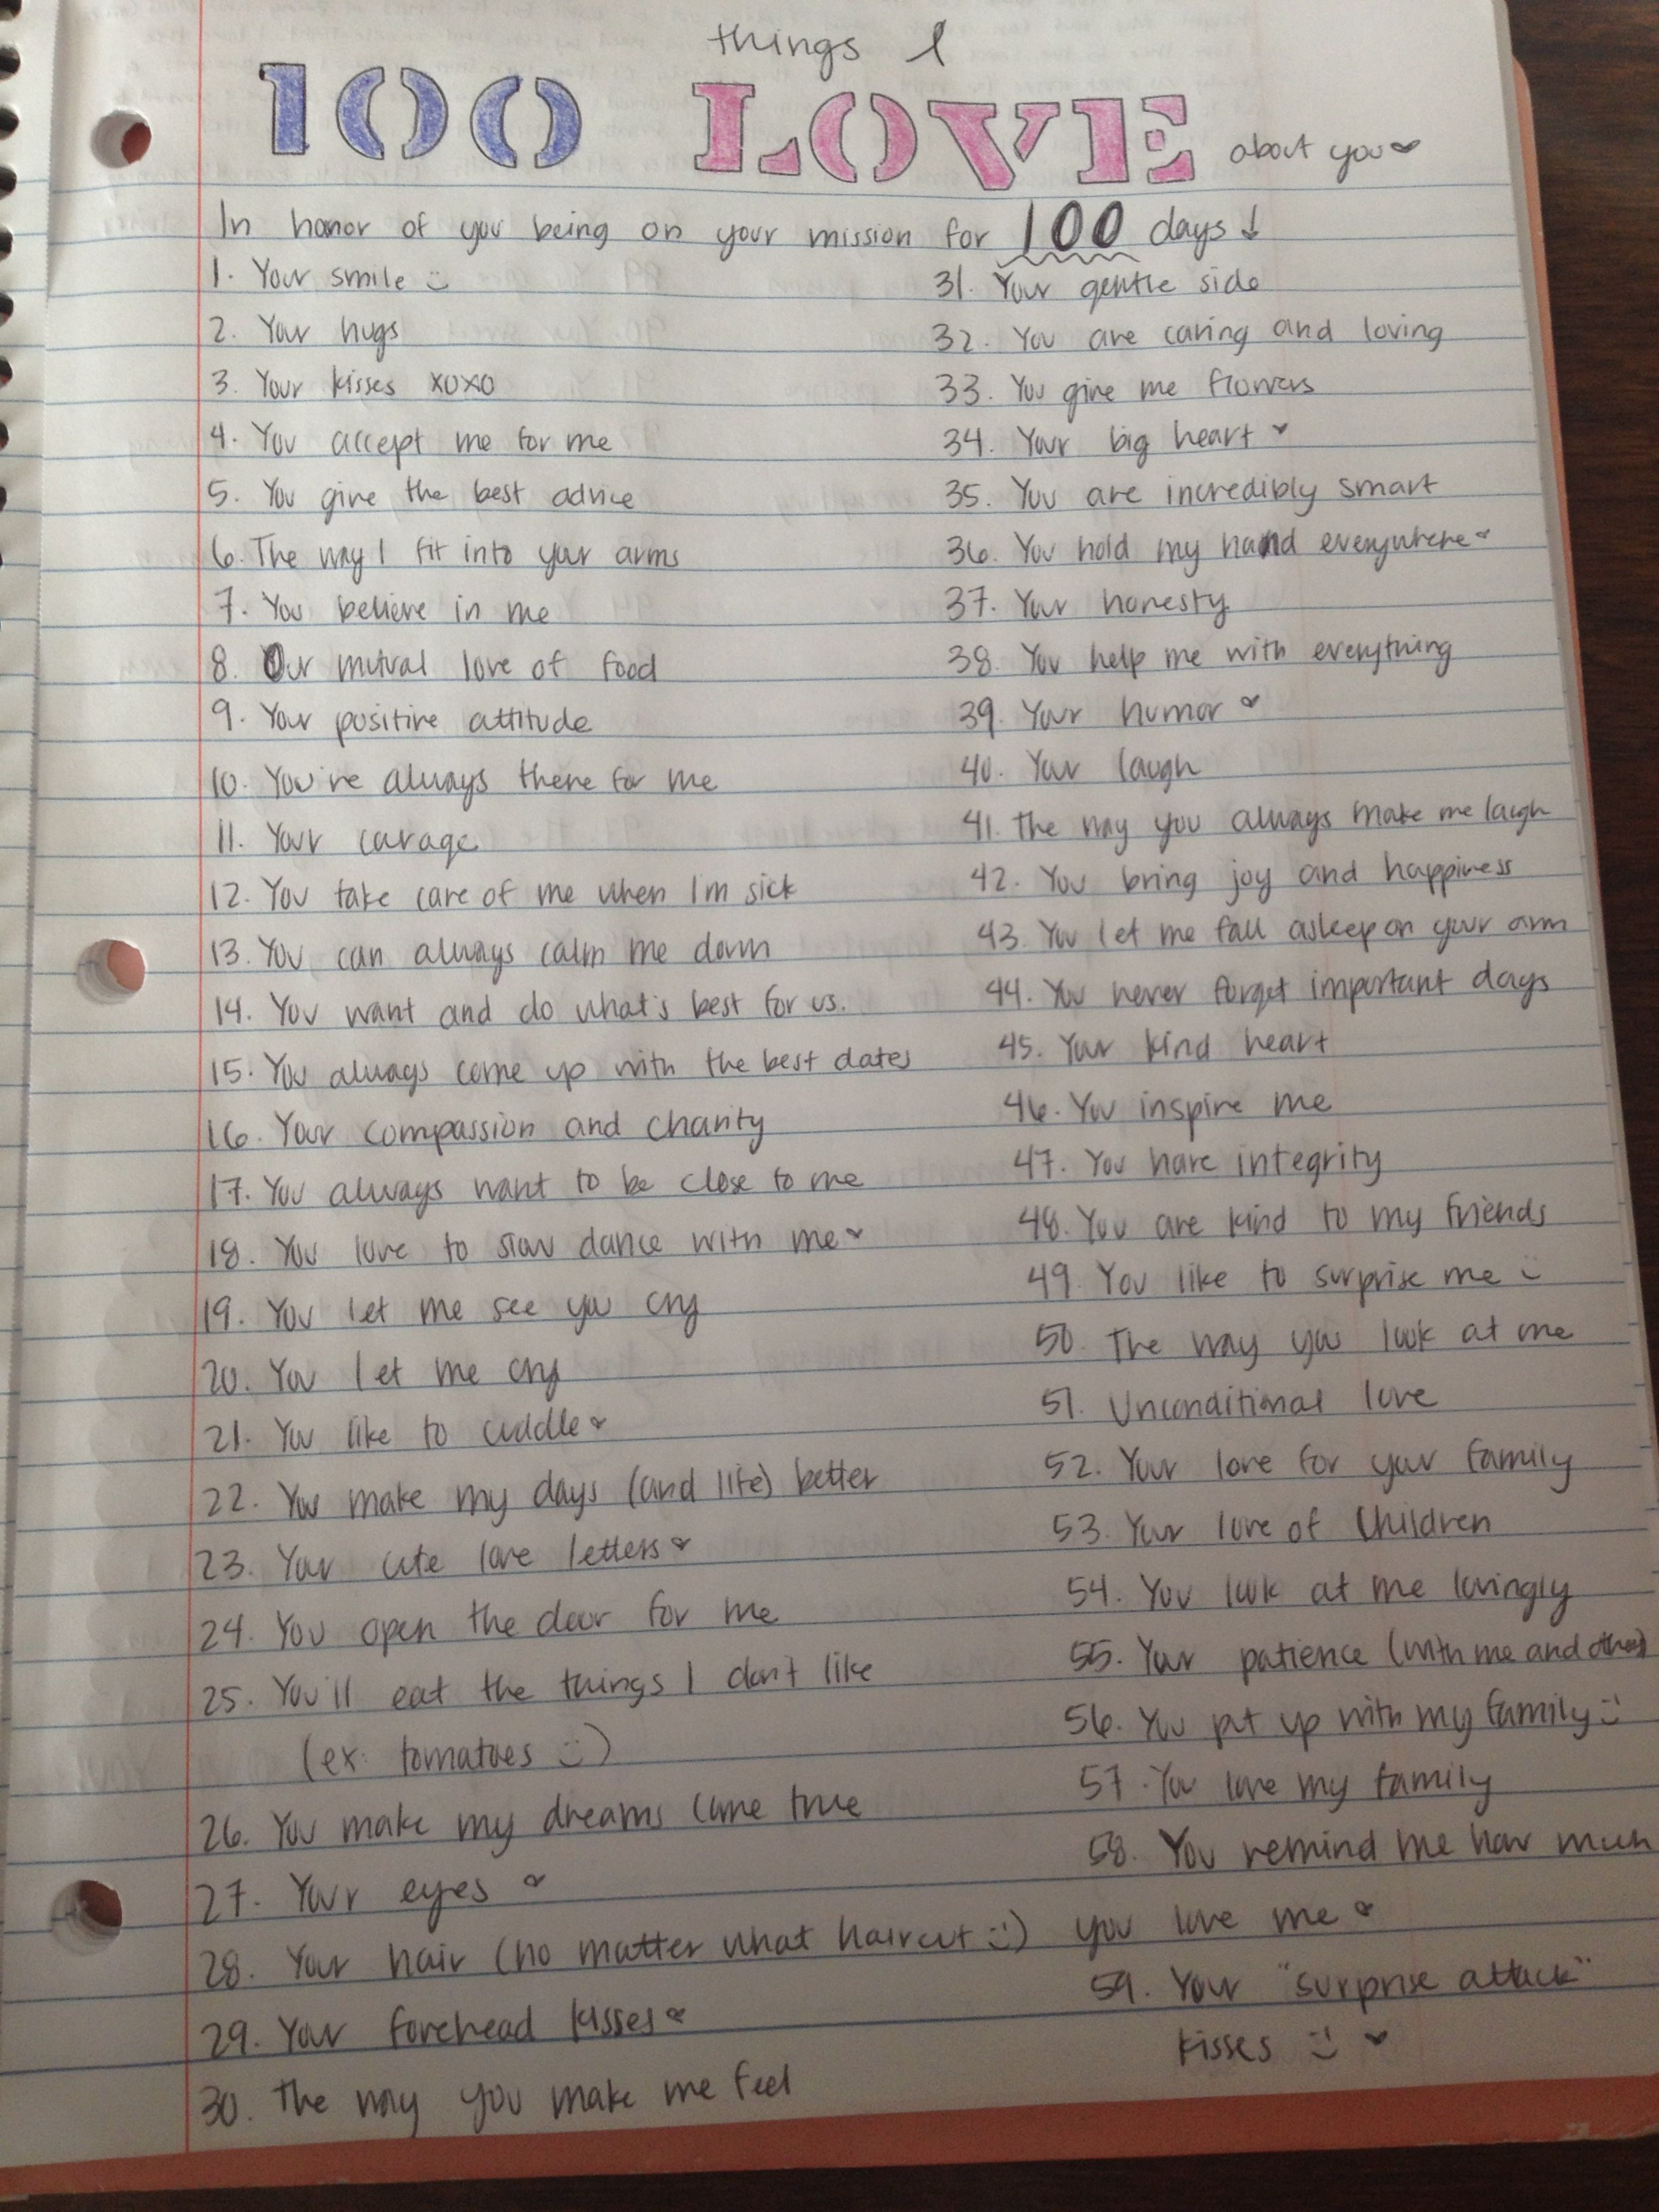 "Lds Missionary Letter Template - 100 Things I Love About You"" Lds Missionary Been Out for 100 Days"